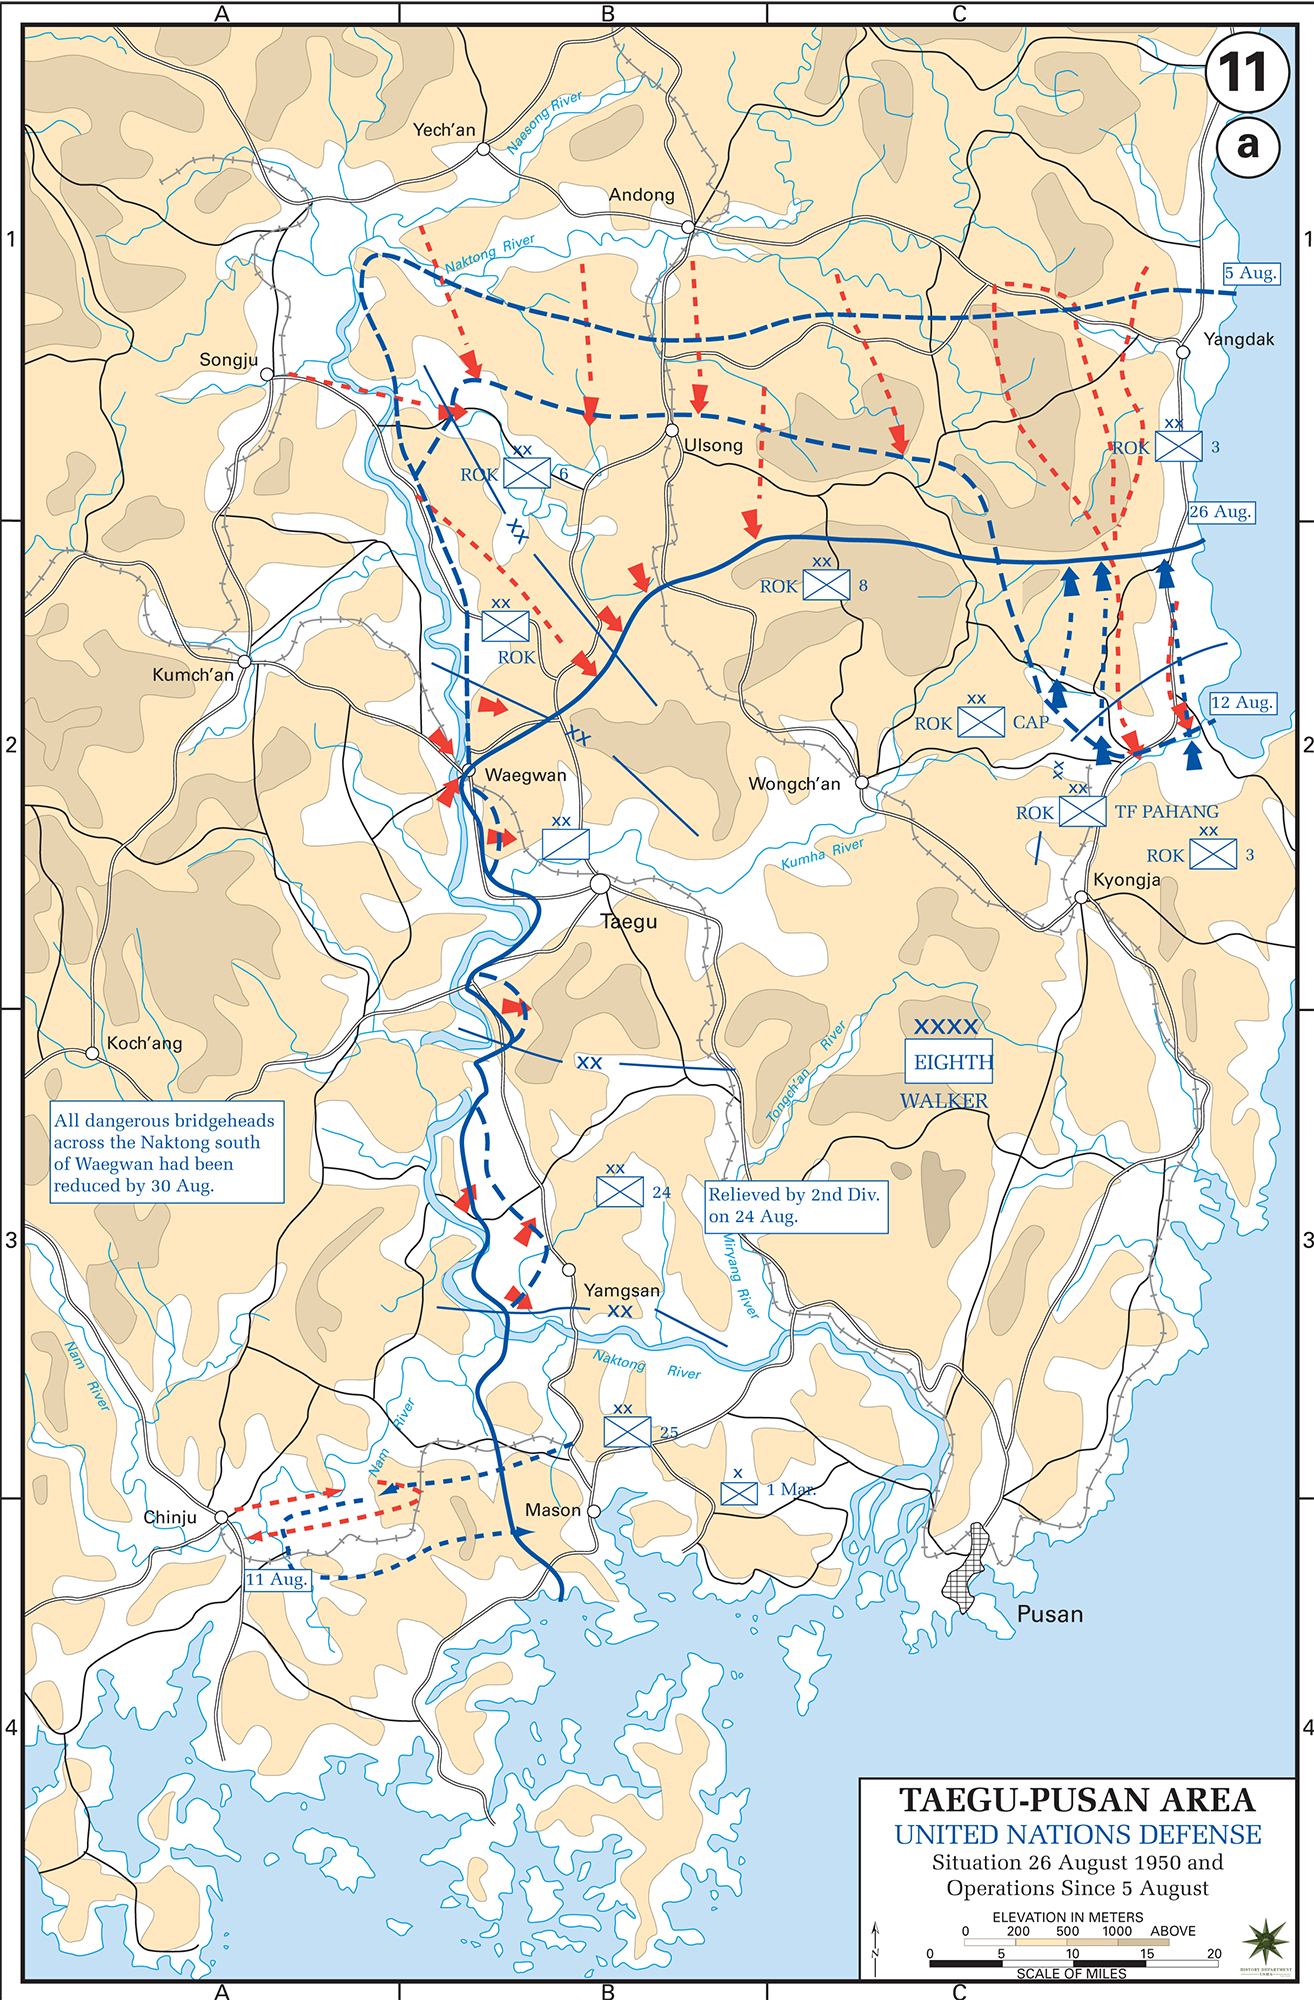 Map of the Korean War: Taegu-Pusan Area, U.N. Defense, Situation August 26, 1950, Operations Since August 5, 1950.